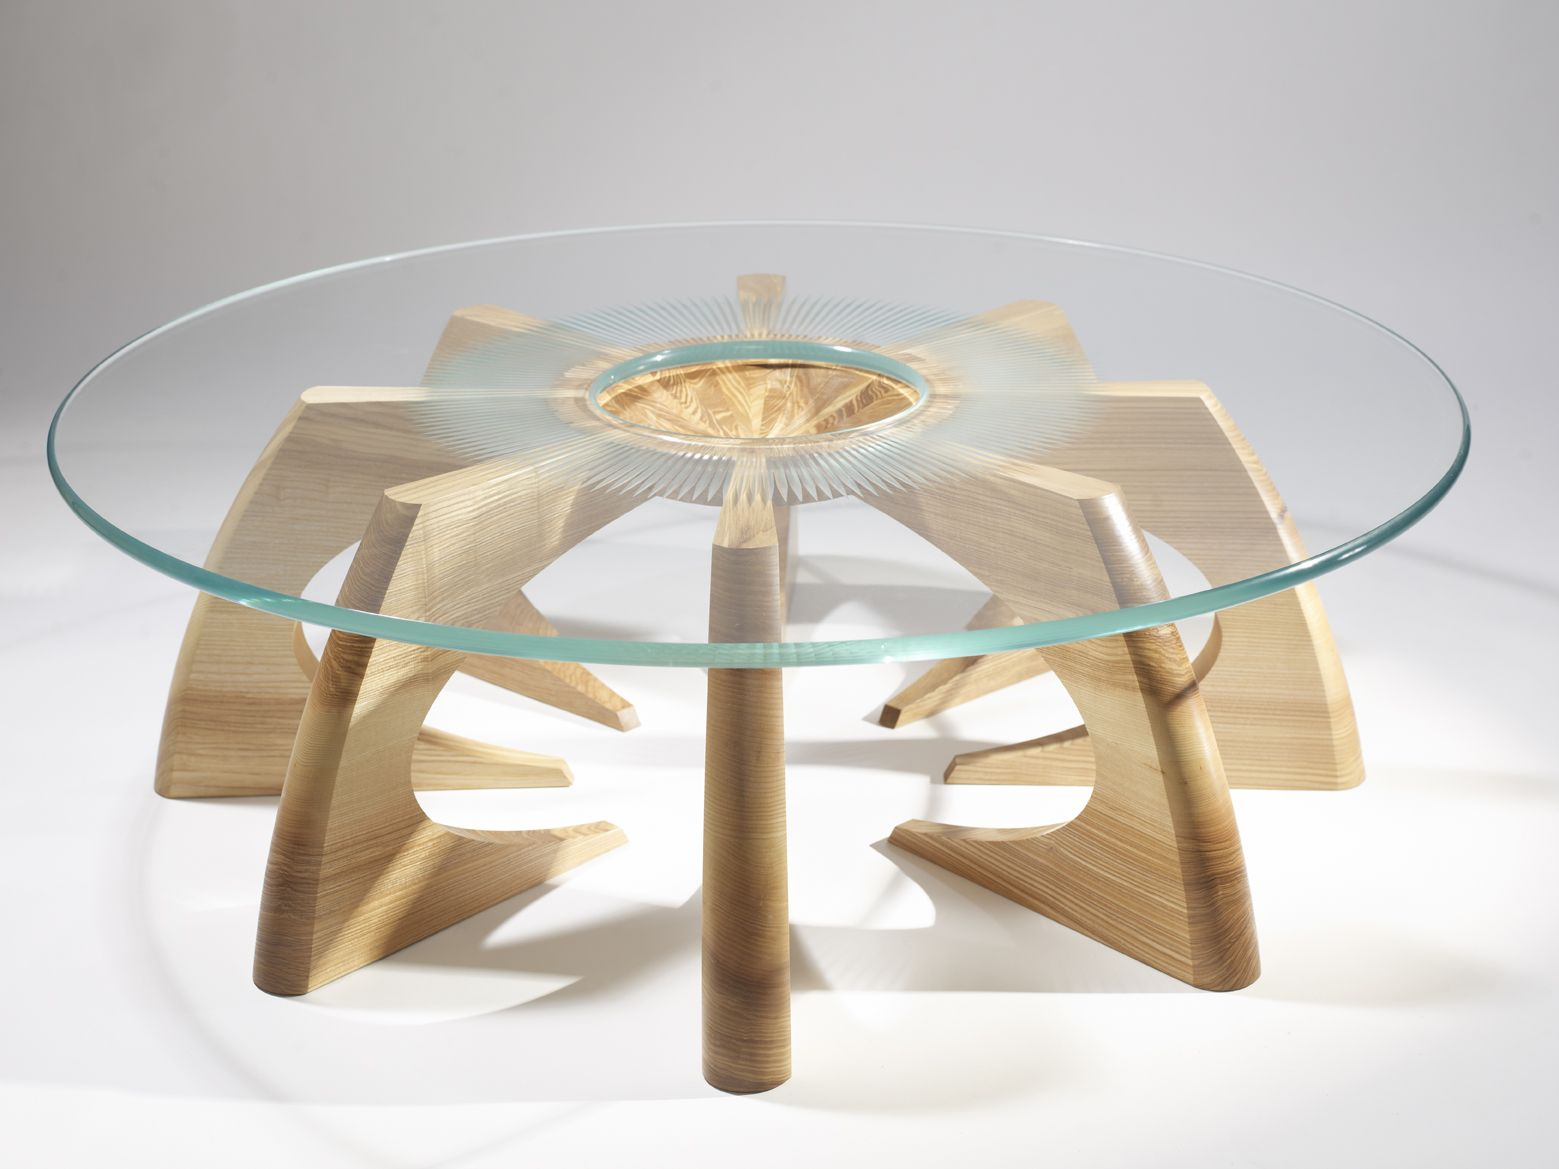 Wood table designs free wood furniture plans cnc for Wooden furniture design